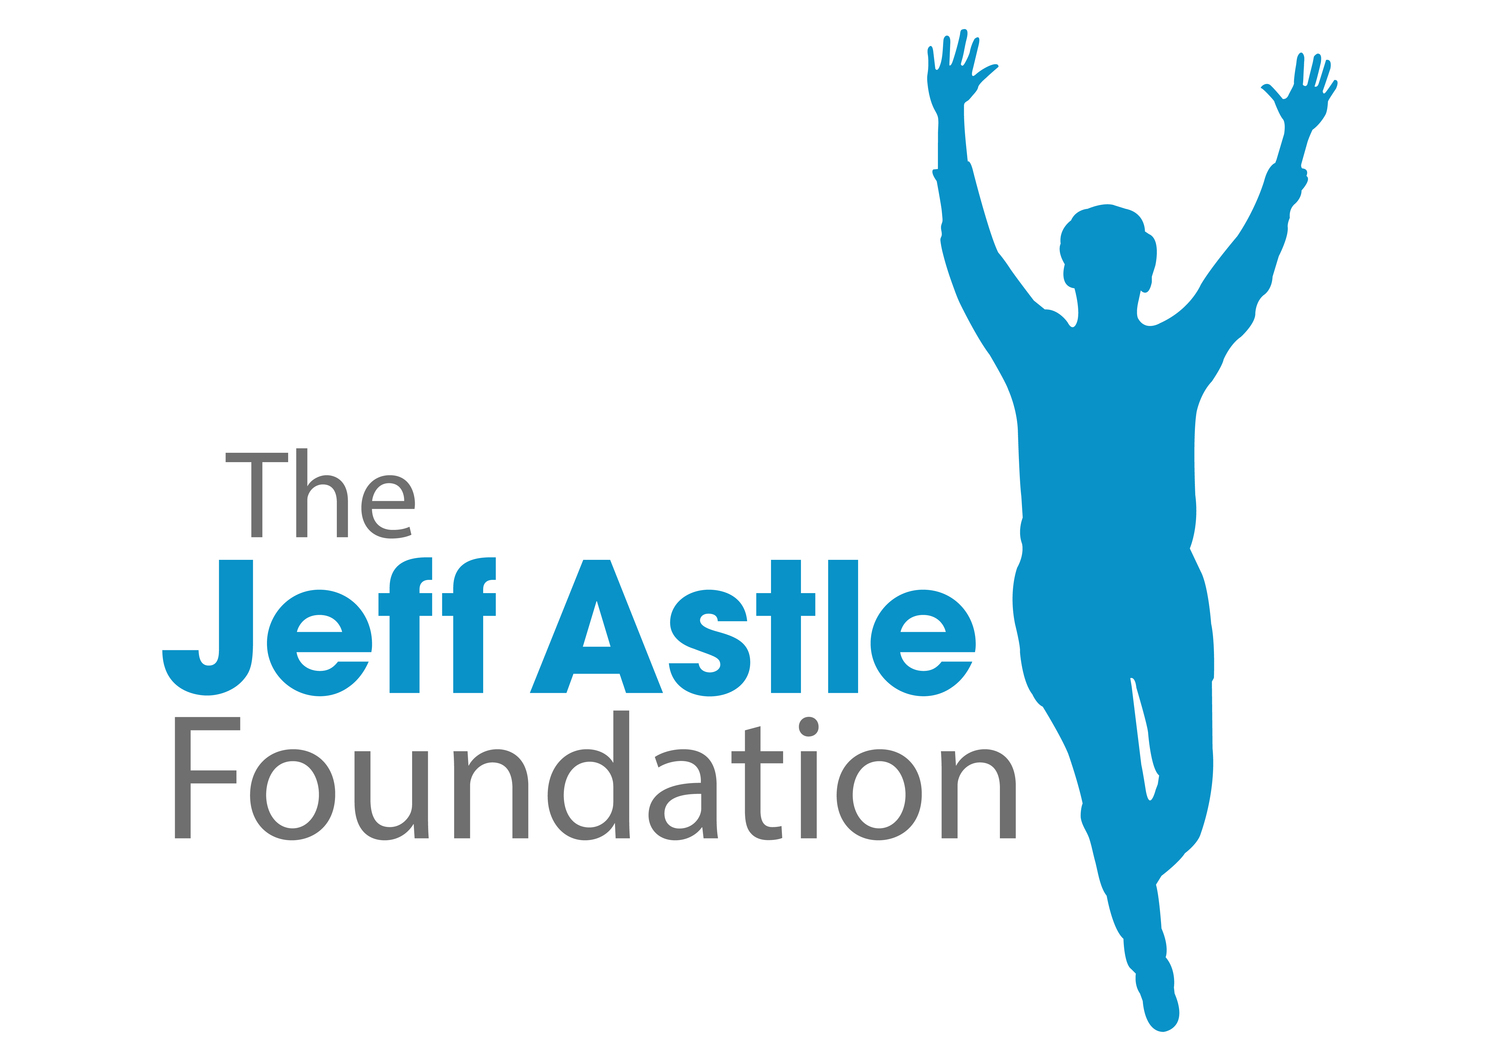 The Jeff Astle Foundation